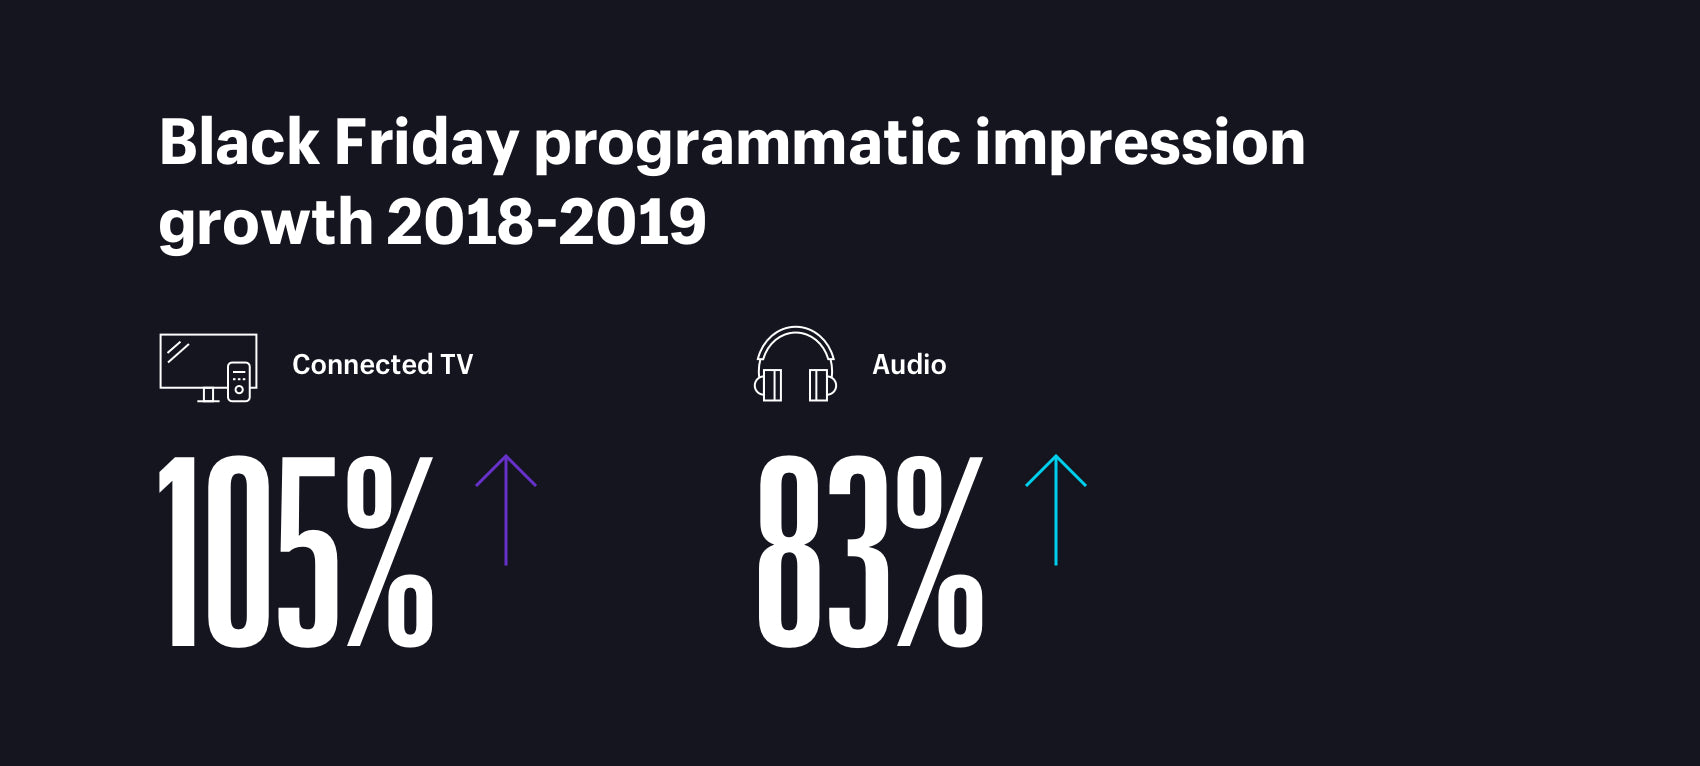 Black Friday programmatic impressions growth